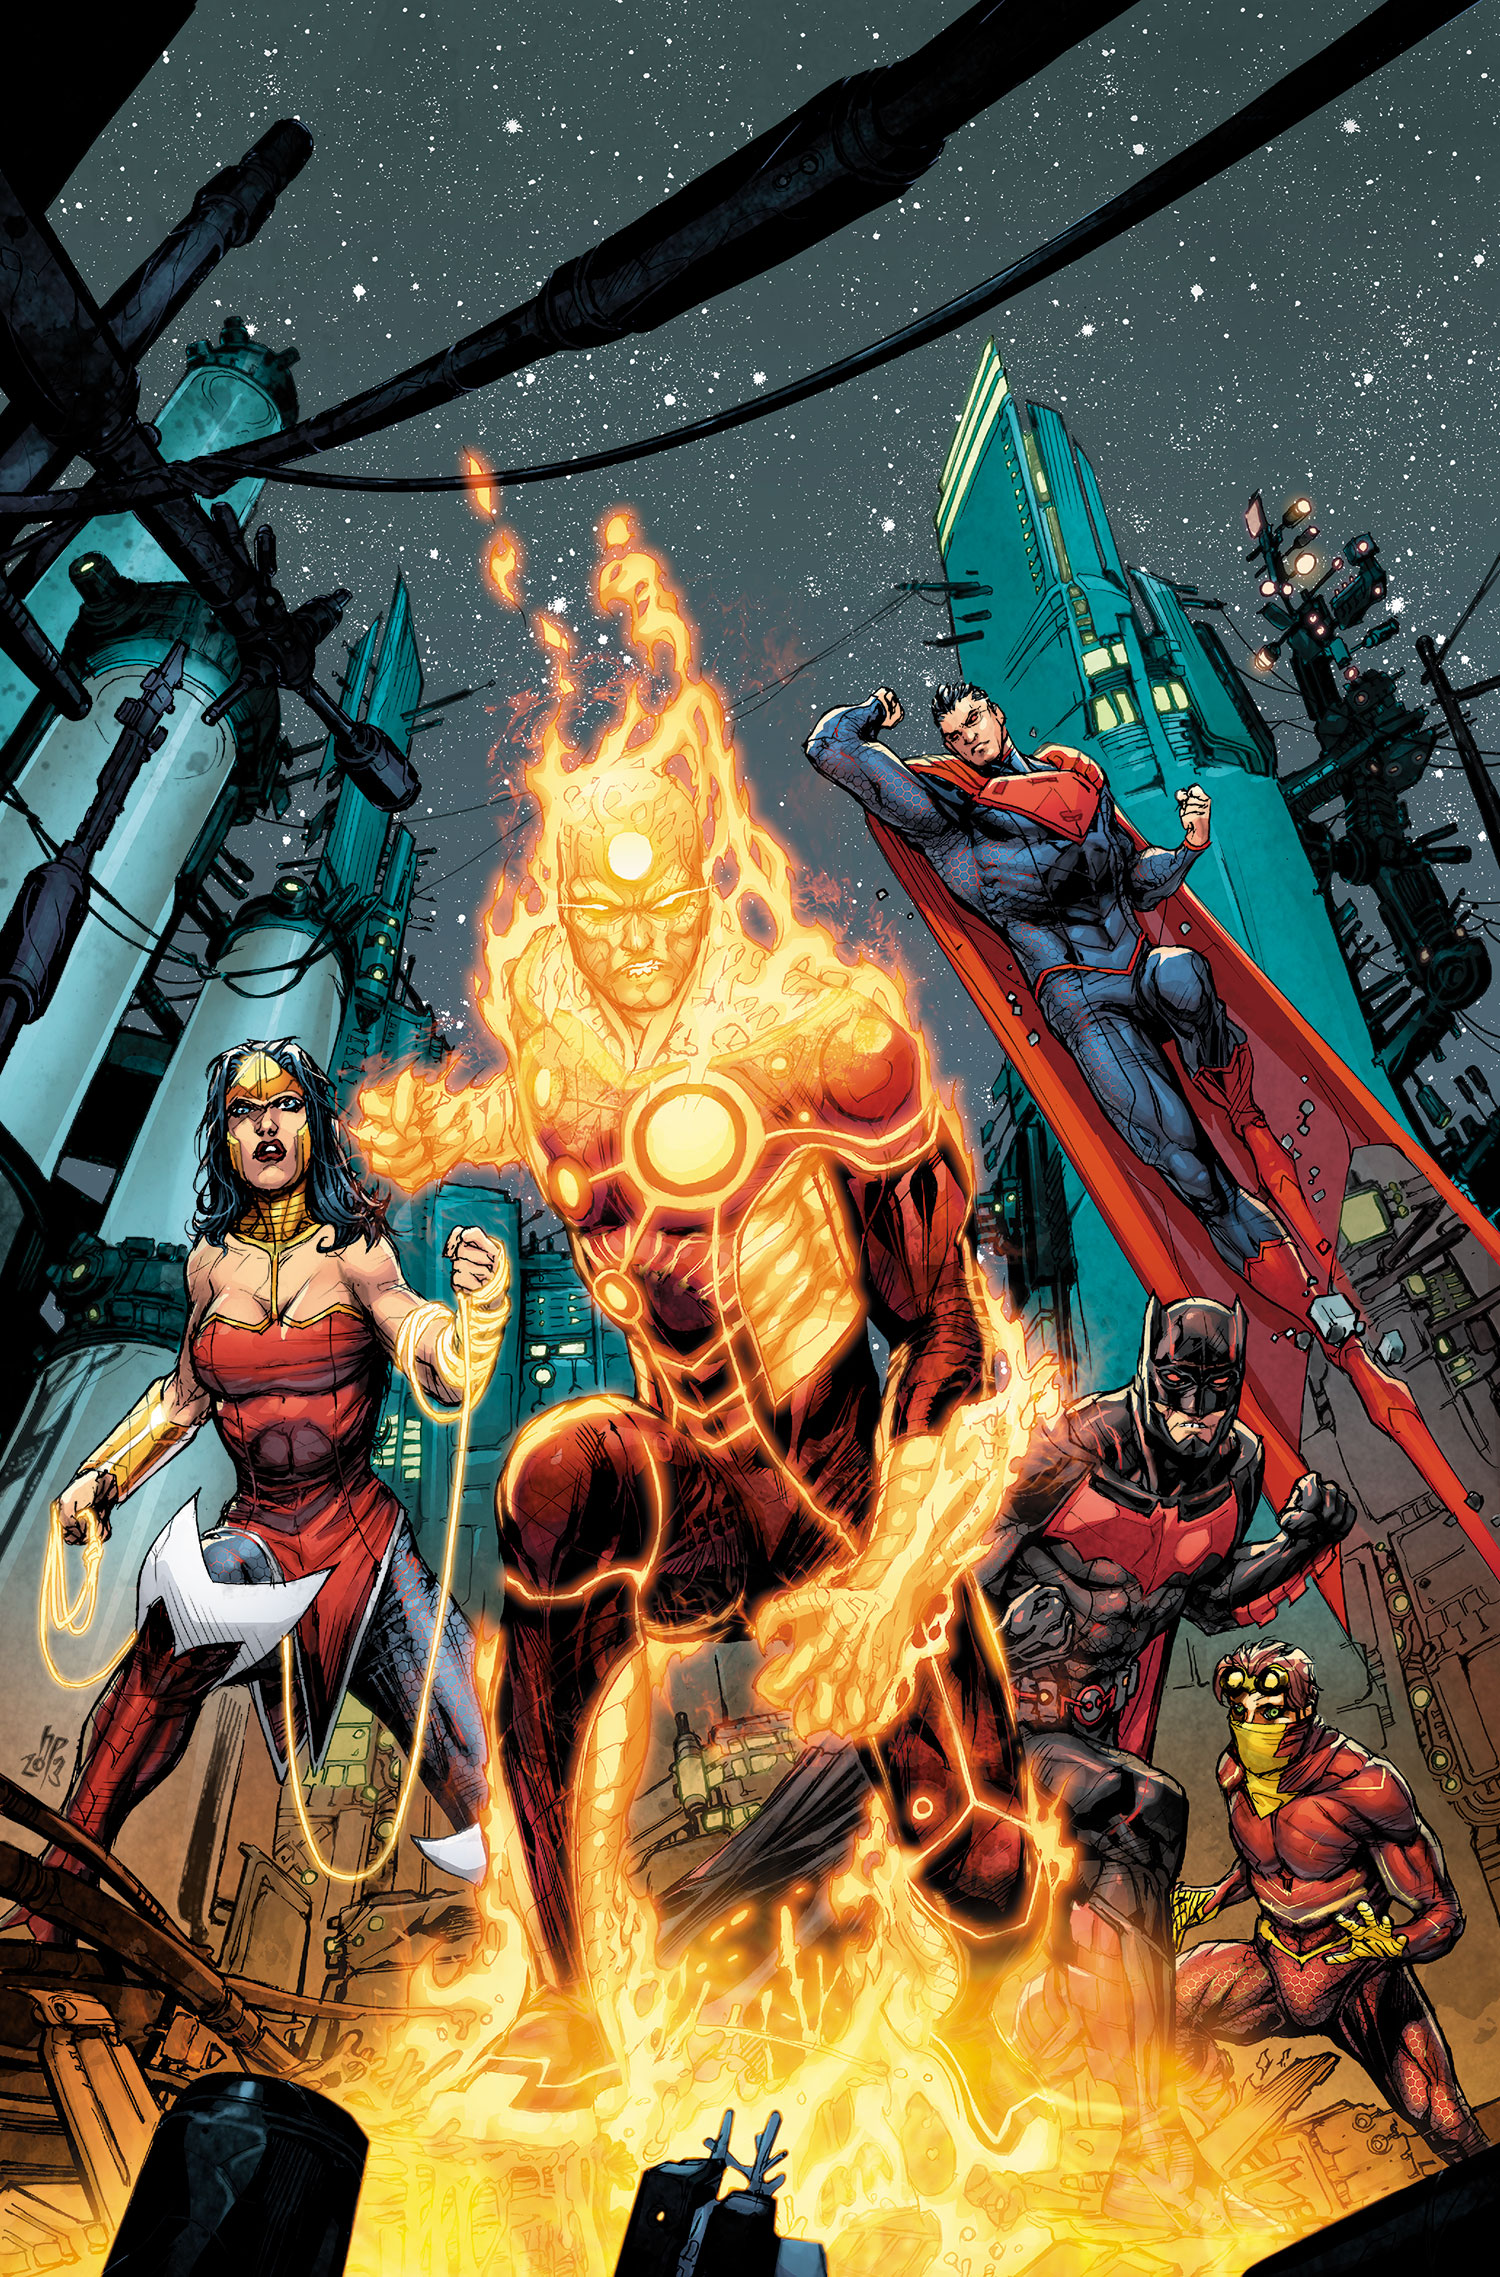 Firestorm (Justice League 3000)